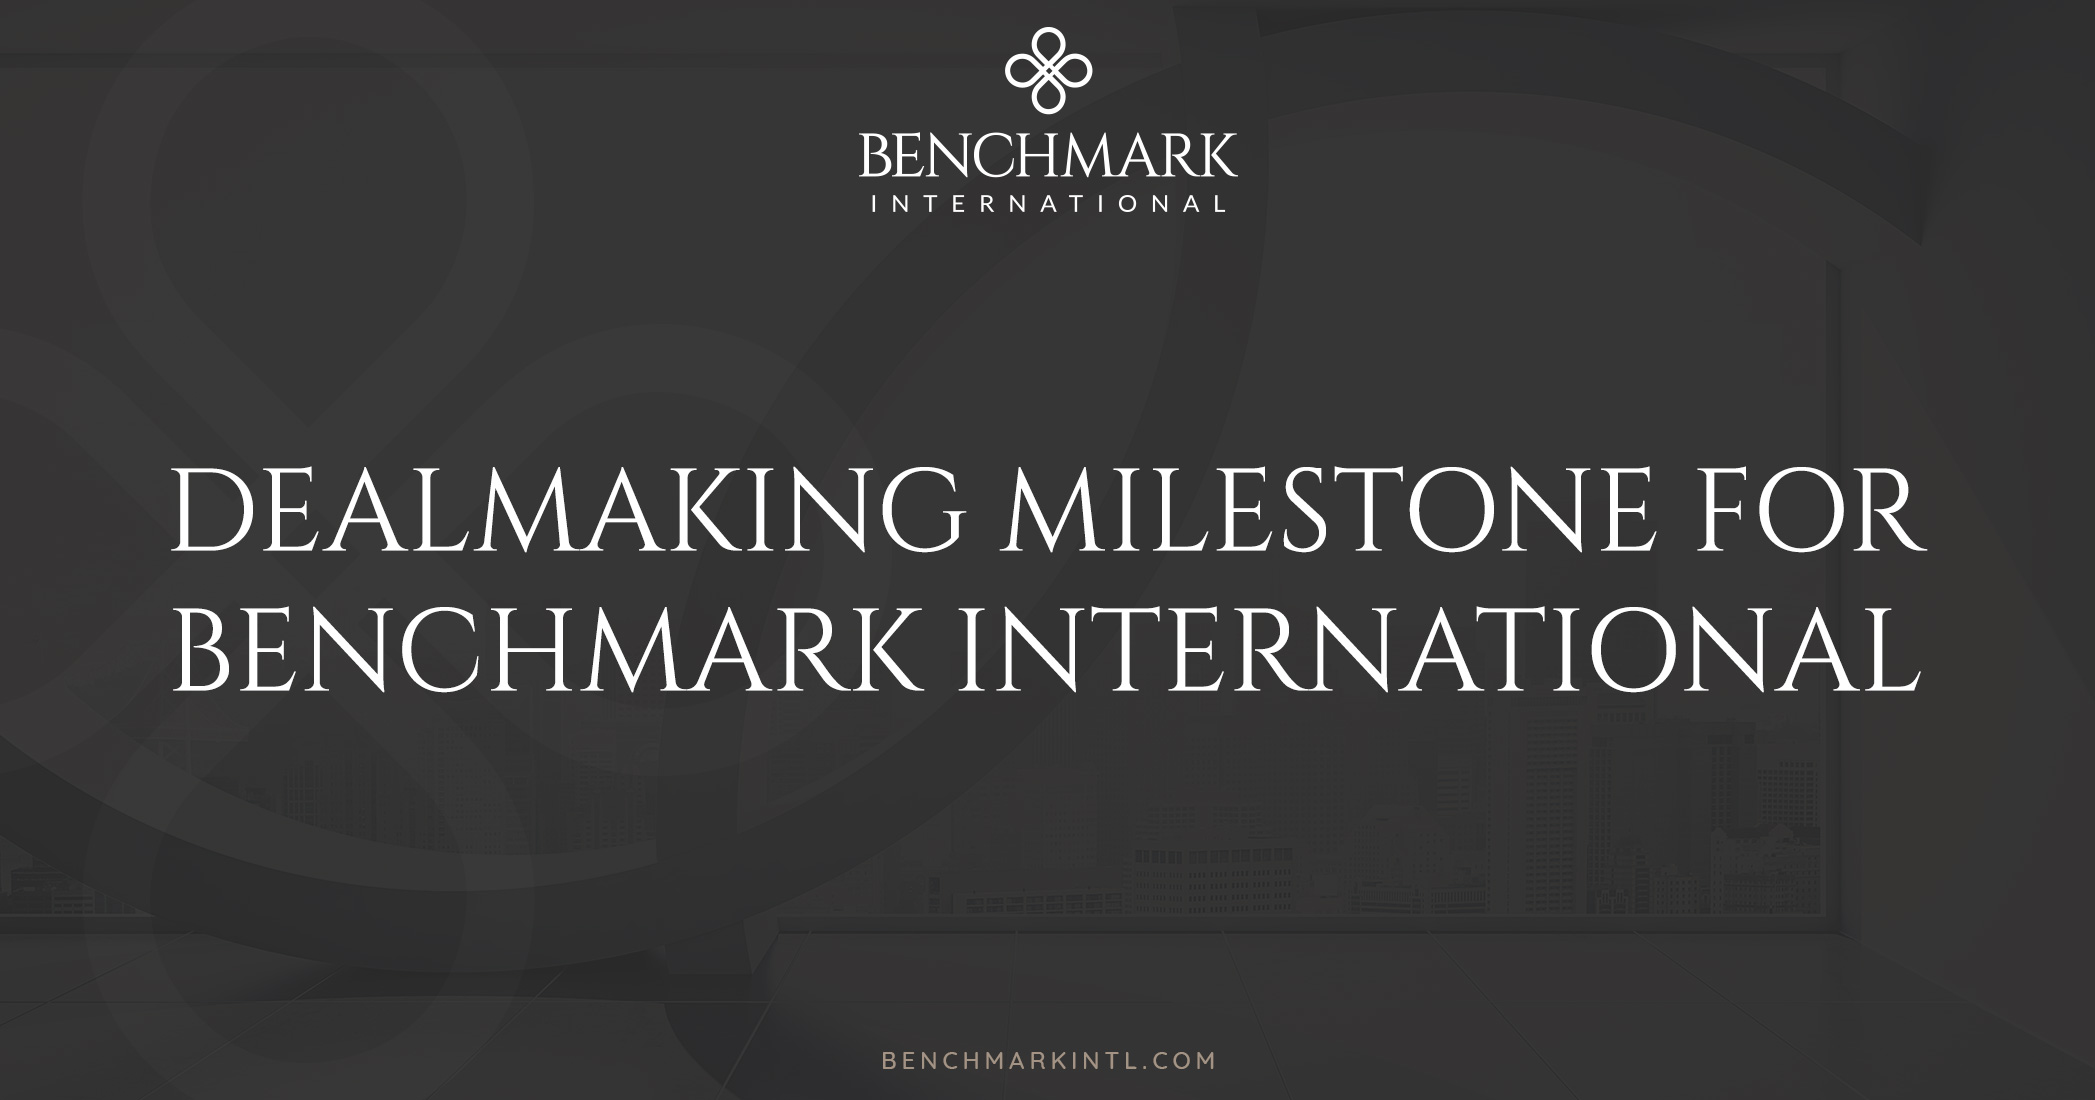 Dealmaking Milestone for Benchmark International